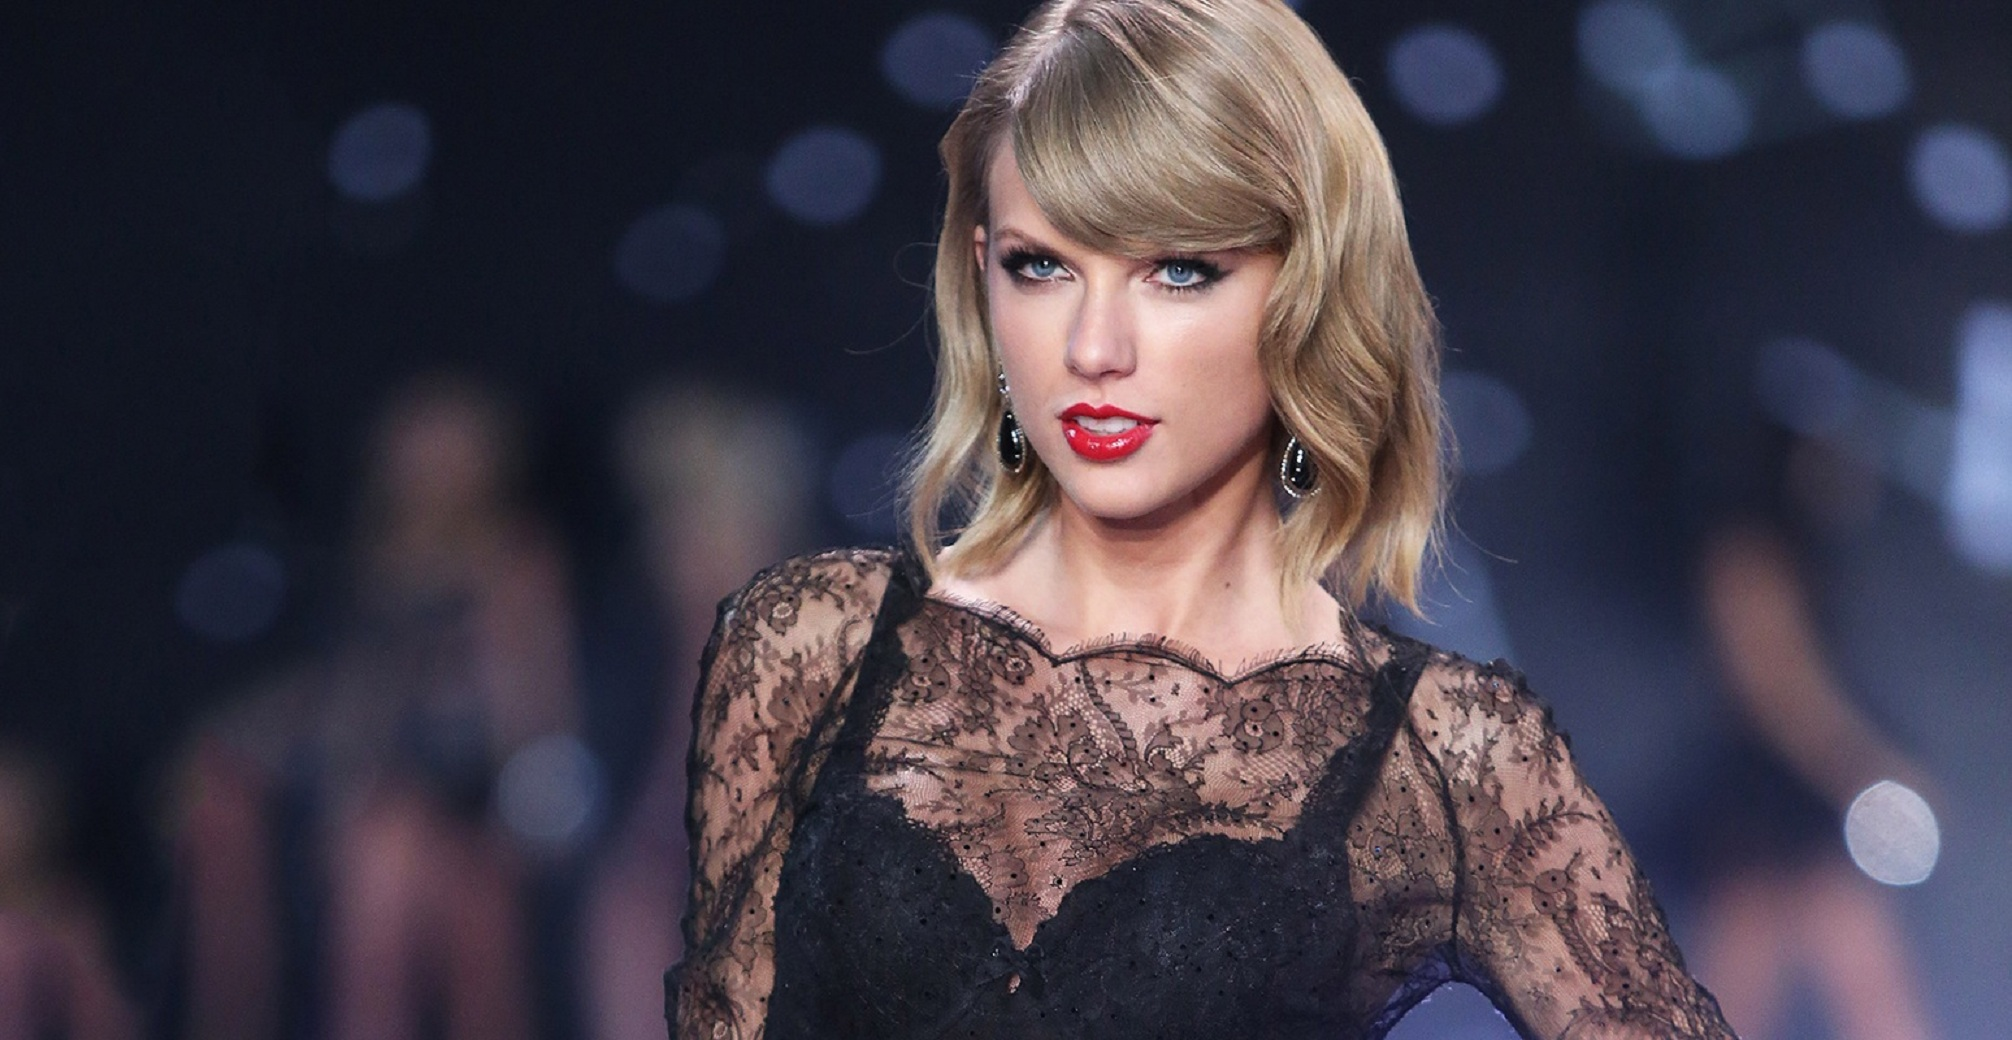 Taylor Swift Announces New Music, Set For Release This Month!